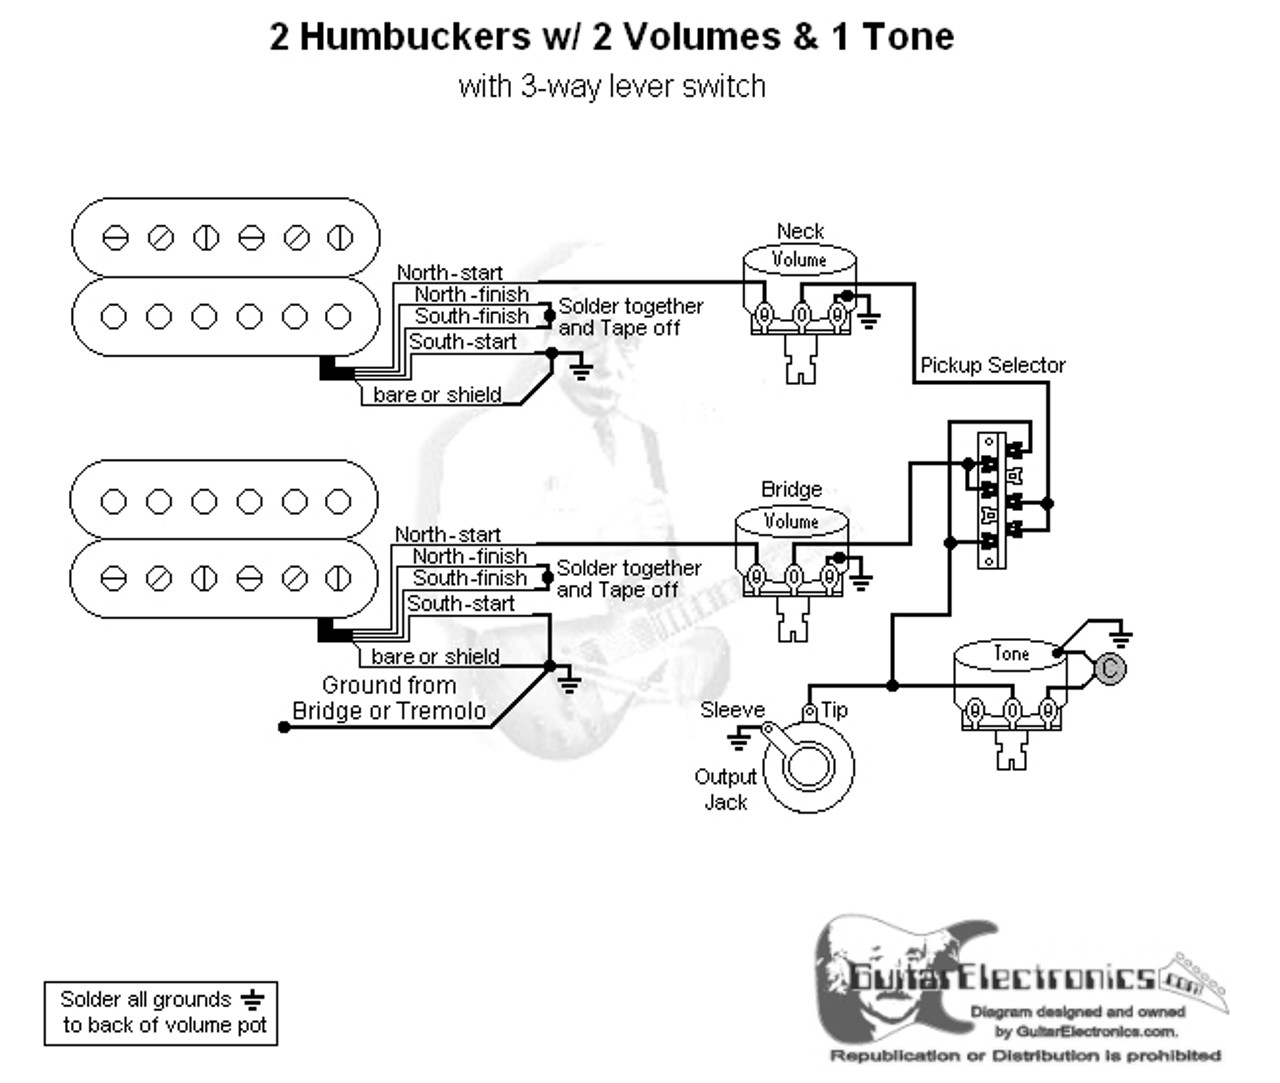 2 humbuckers 3 way lever switch 2 volumes 1 tone Guitar Wiring Schematics